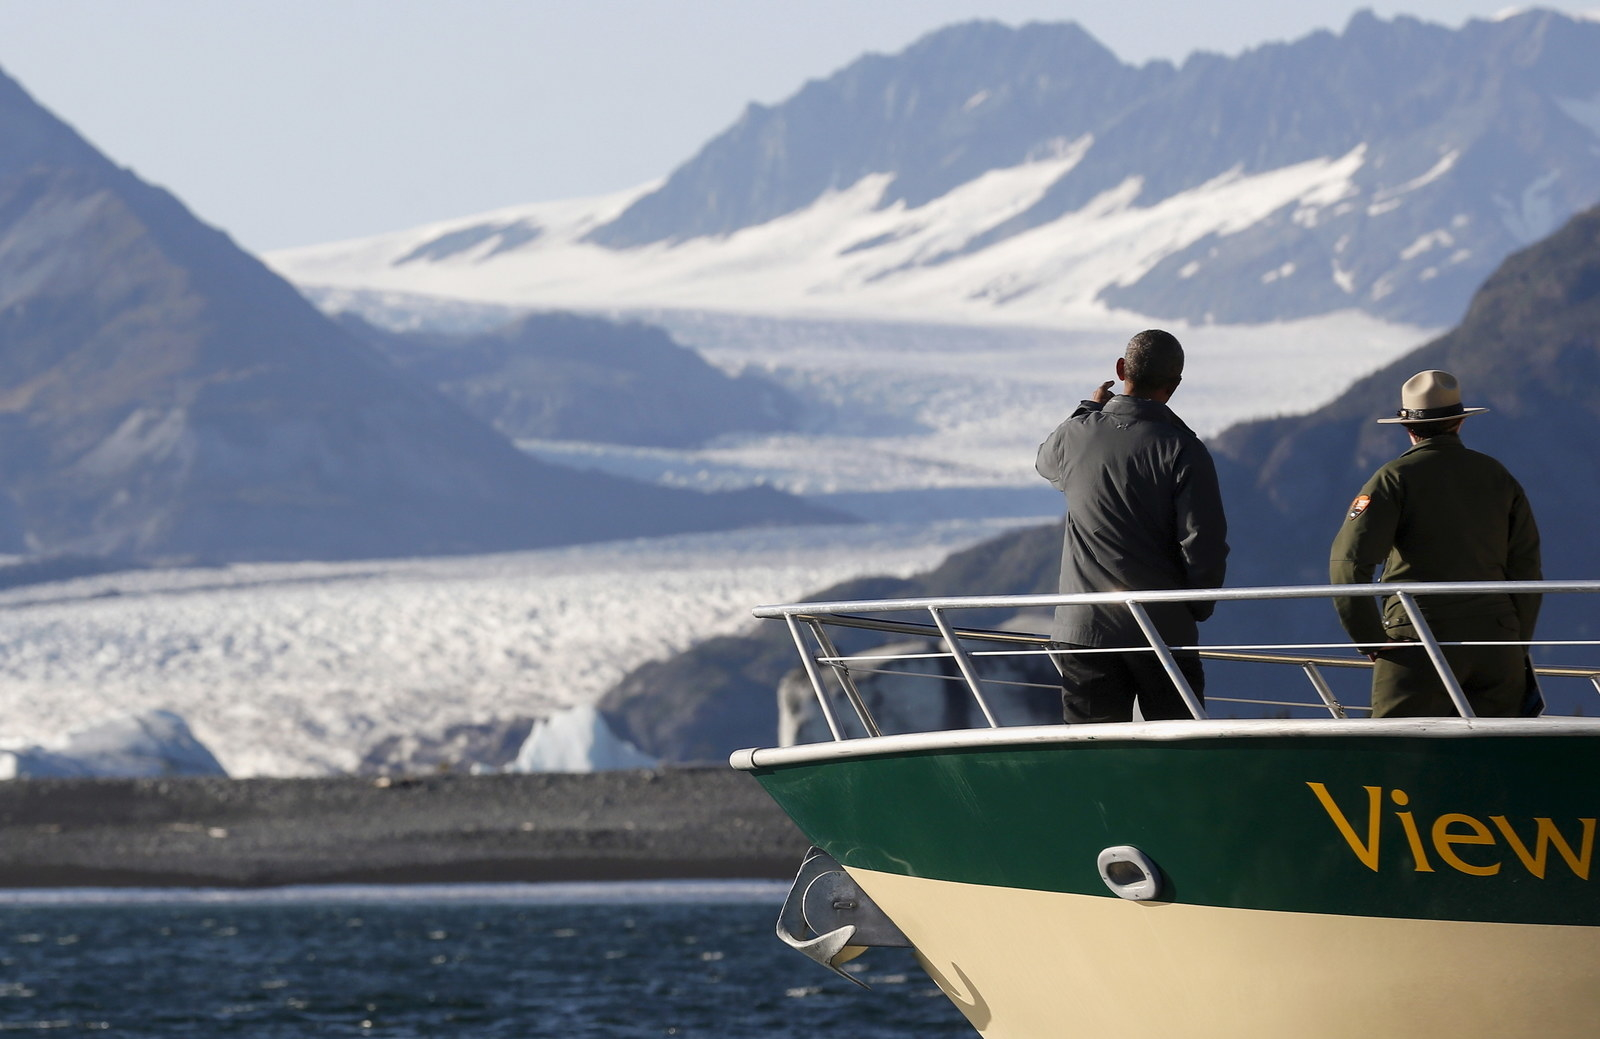 The US And Canada Ban Oil Drilling In Vast Swaths Of Arctic And Atlantic Oceans